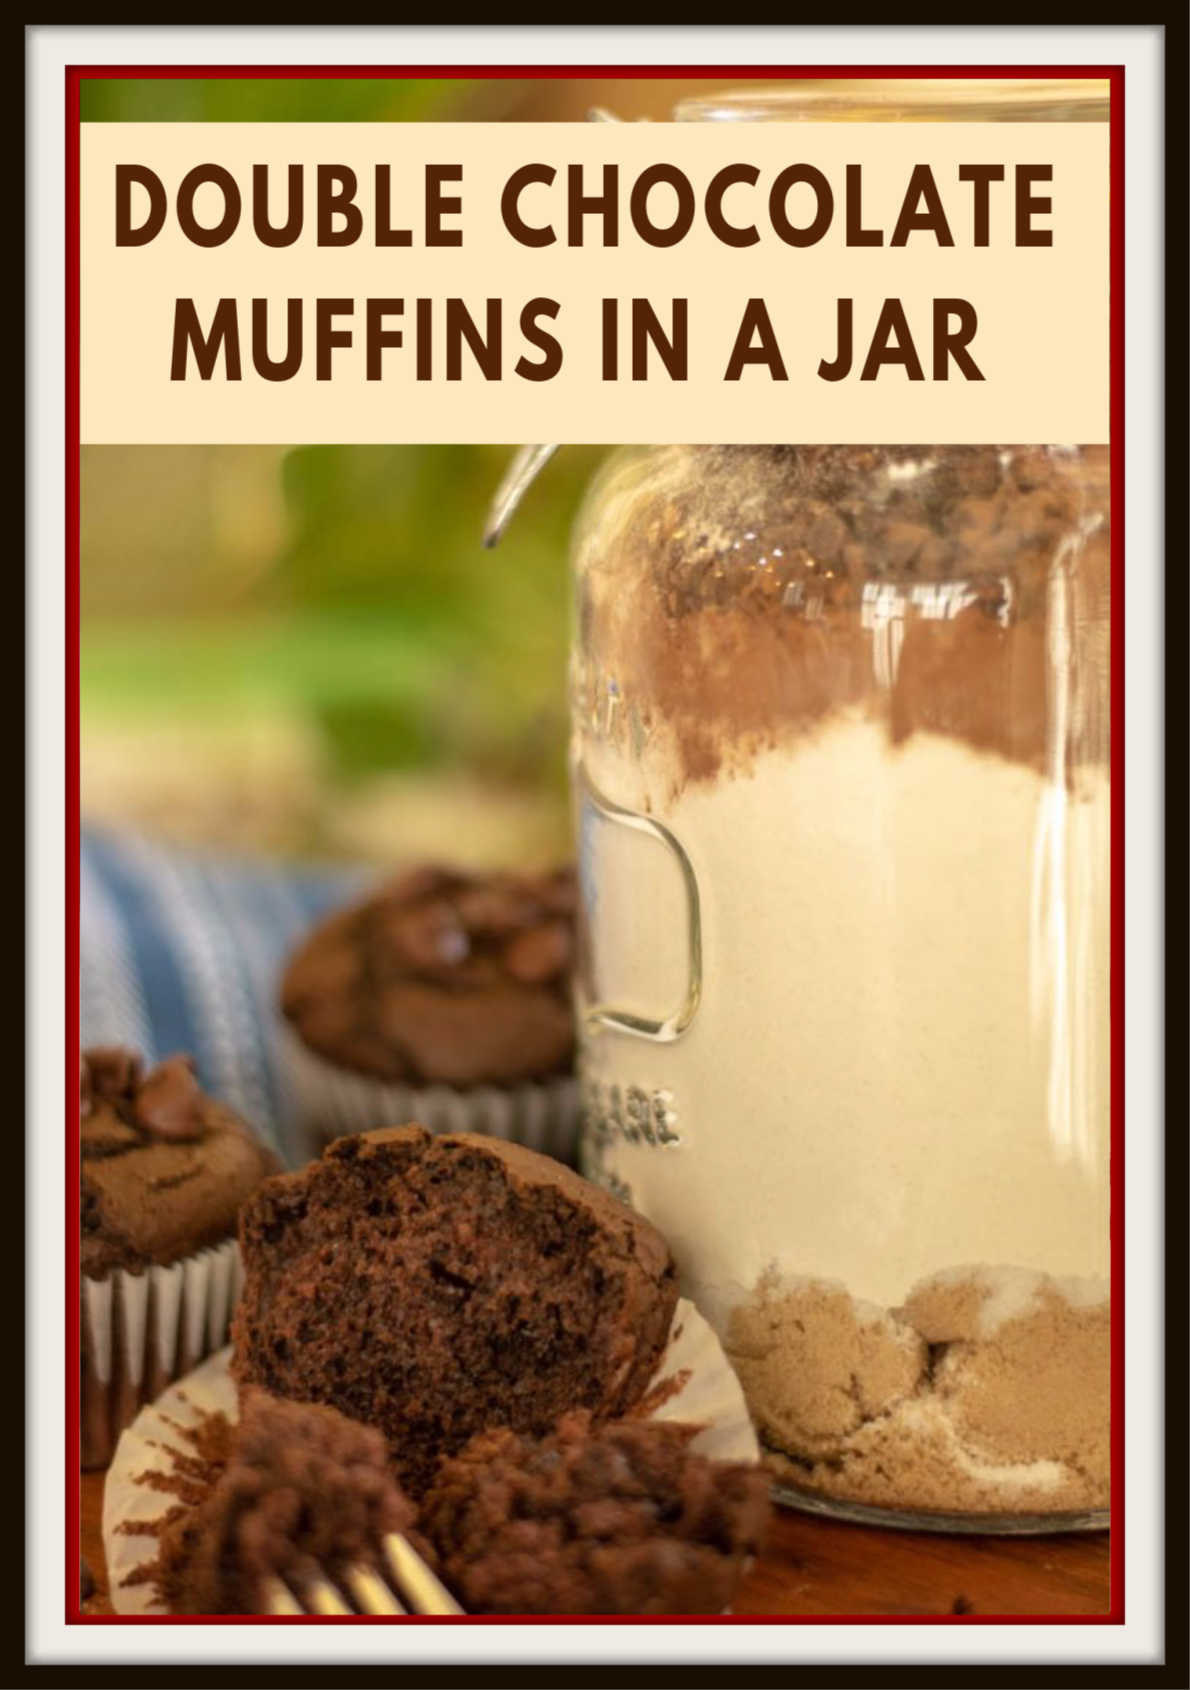 A Perfect Holiday Gift. Double Chocolate Muffins in a Jar includes pre-measured ingredients and make a phenomenal and thoughtful gift! #muffins #chocolate #giftinajar #MuffinsinaJar